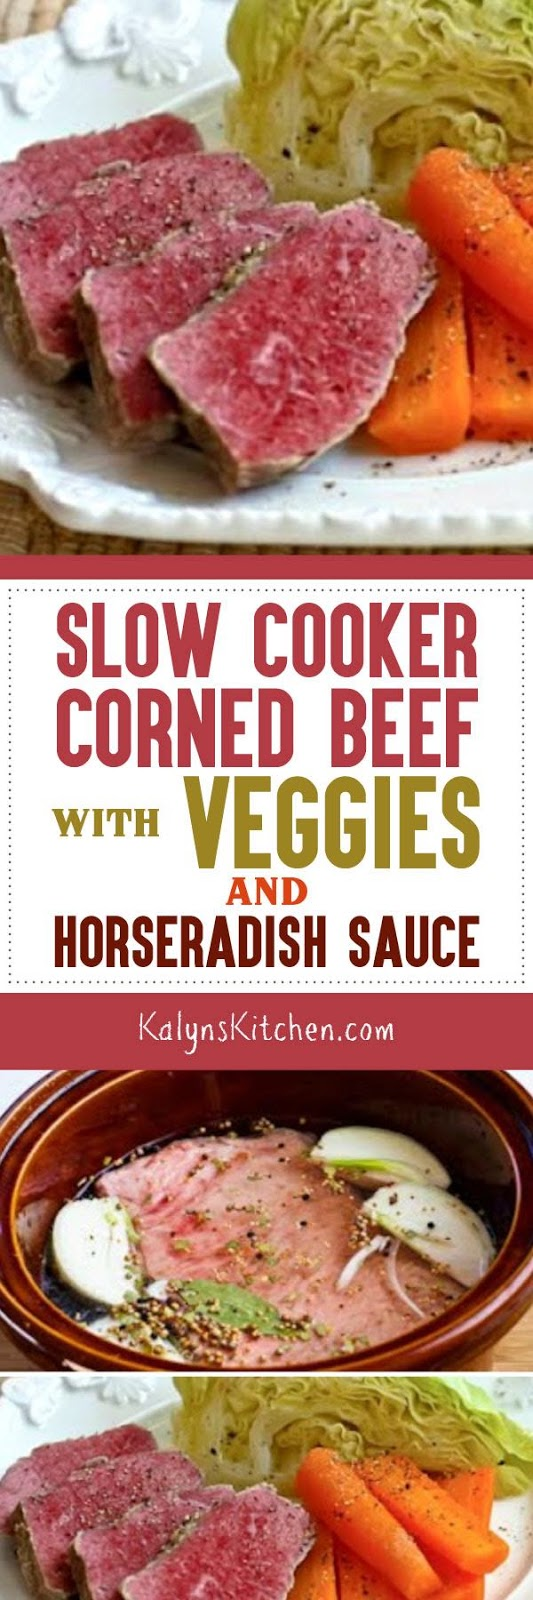 ... Kitchen®: Slow Cooker Corned Beef with Veggies and Horseradish Sauce